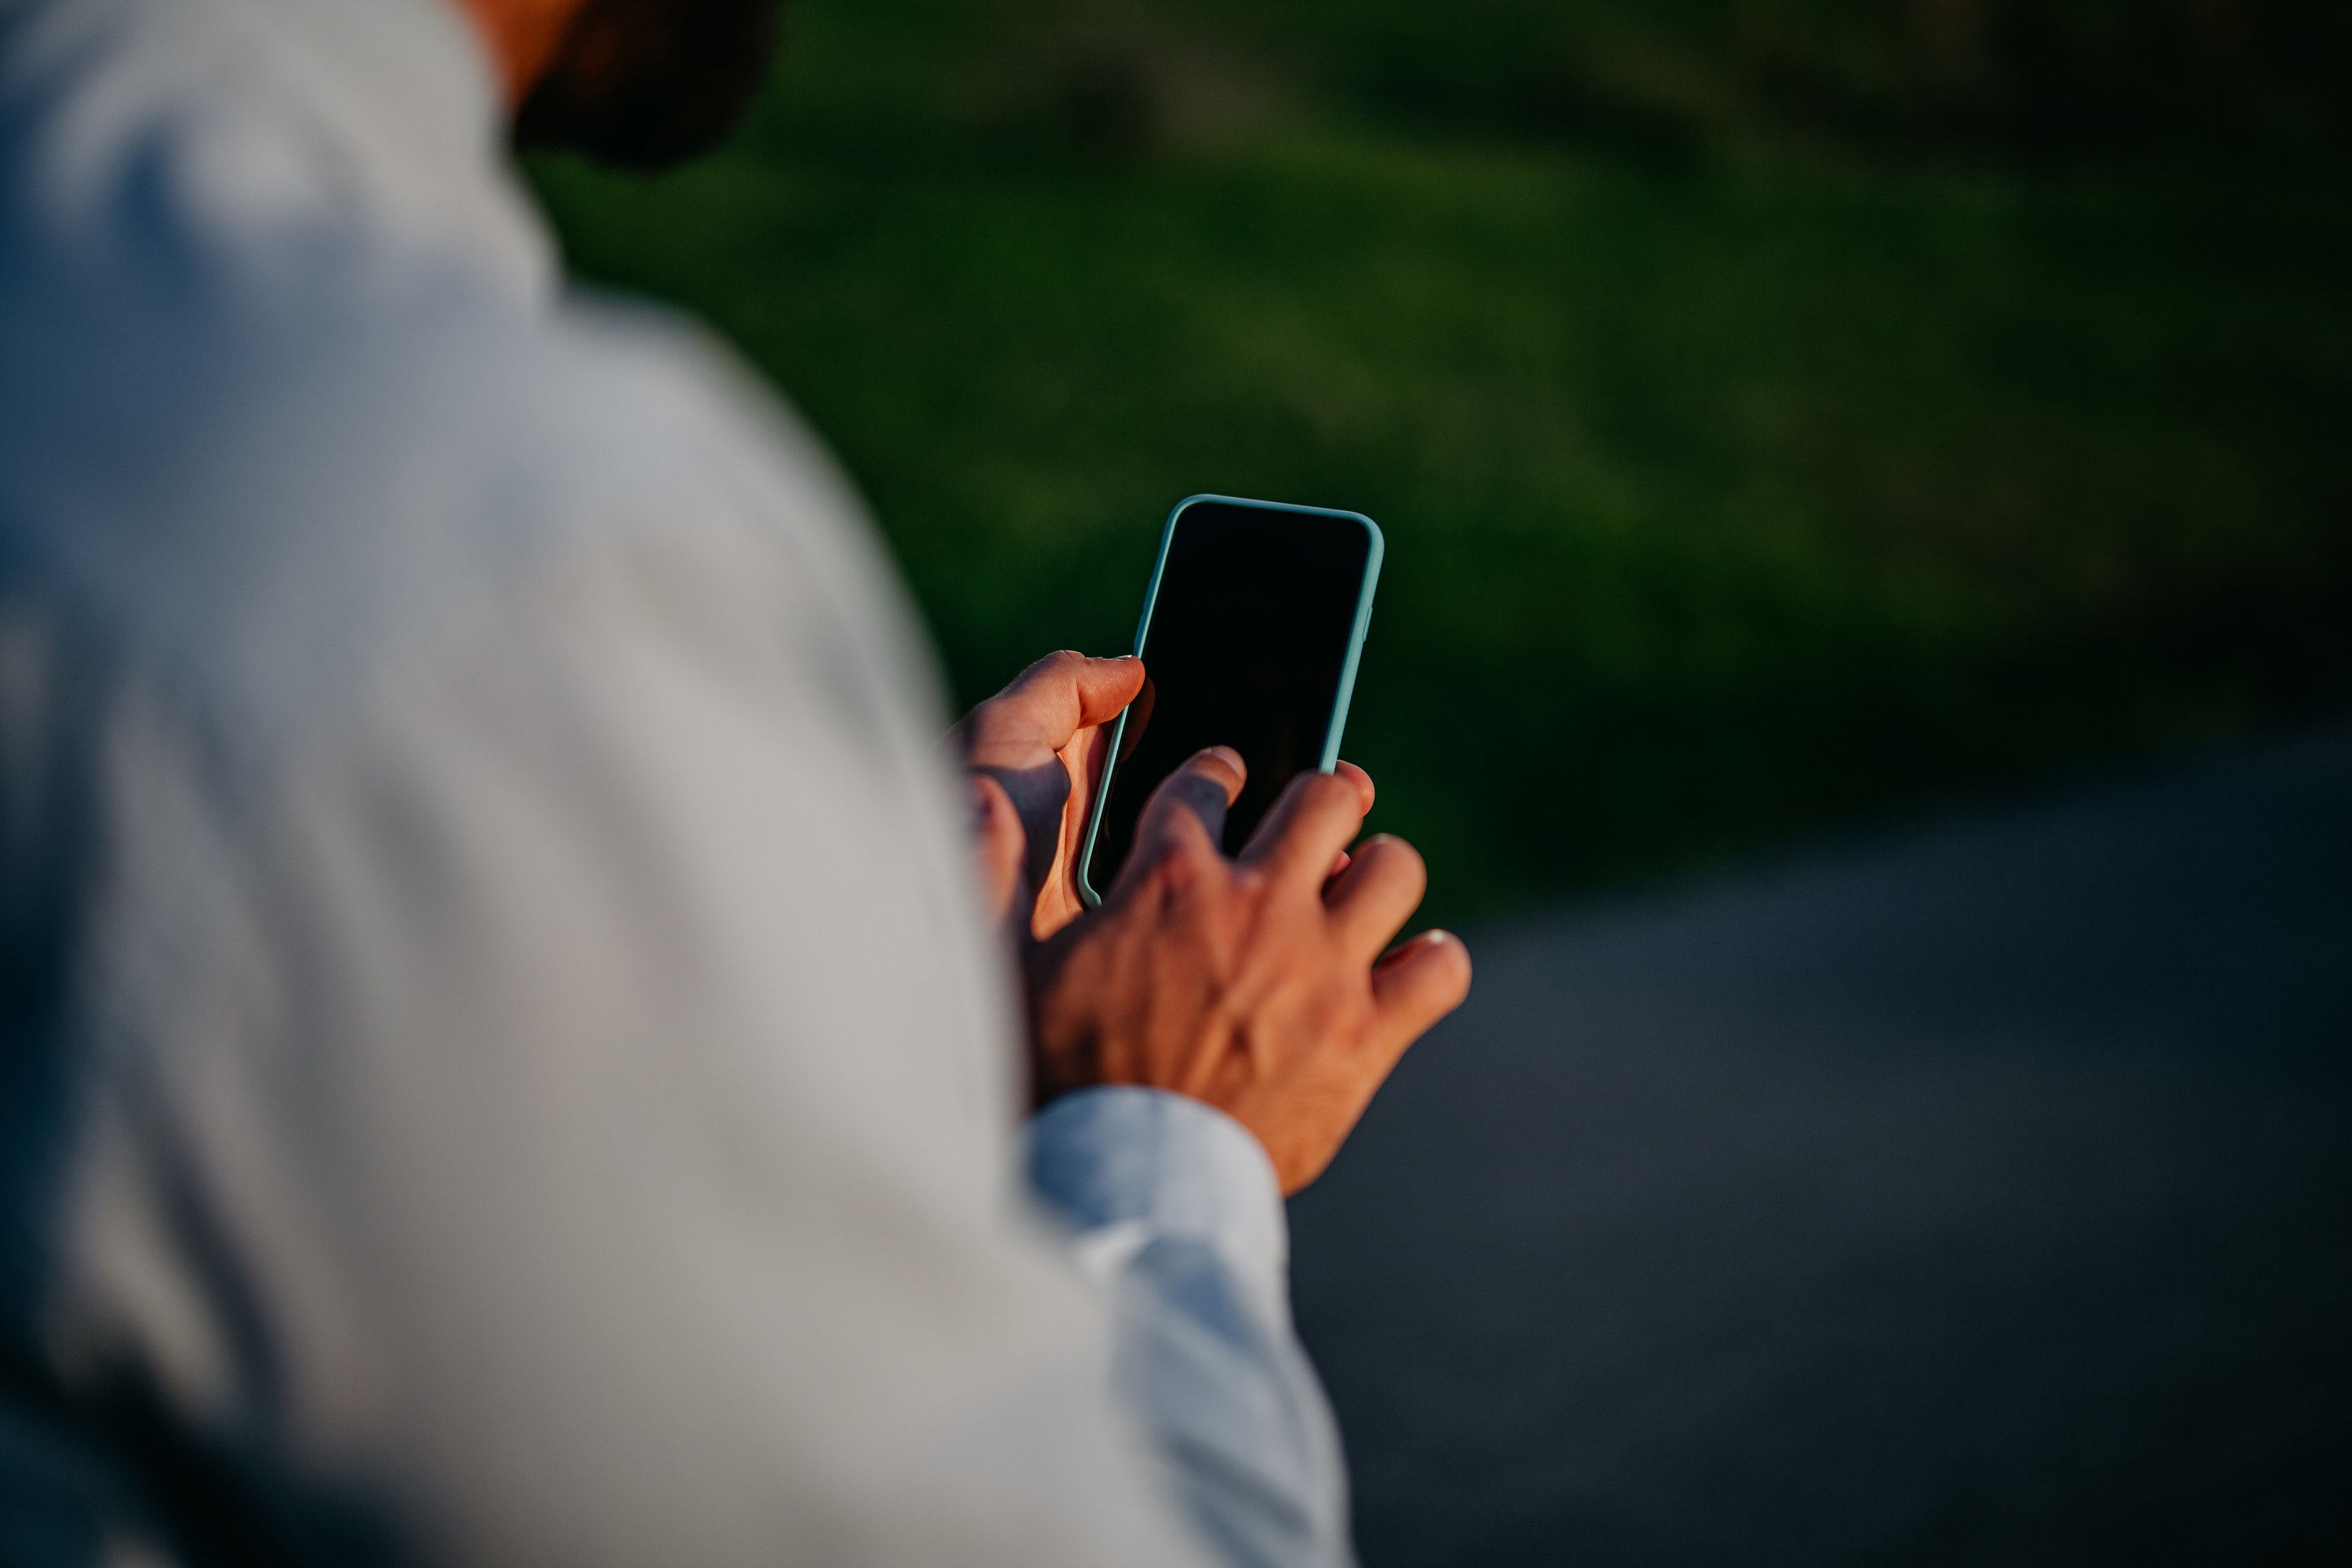 Back view of a man holding a blank iPhone and tapping it